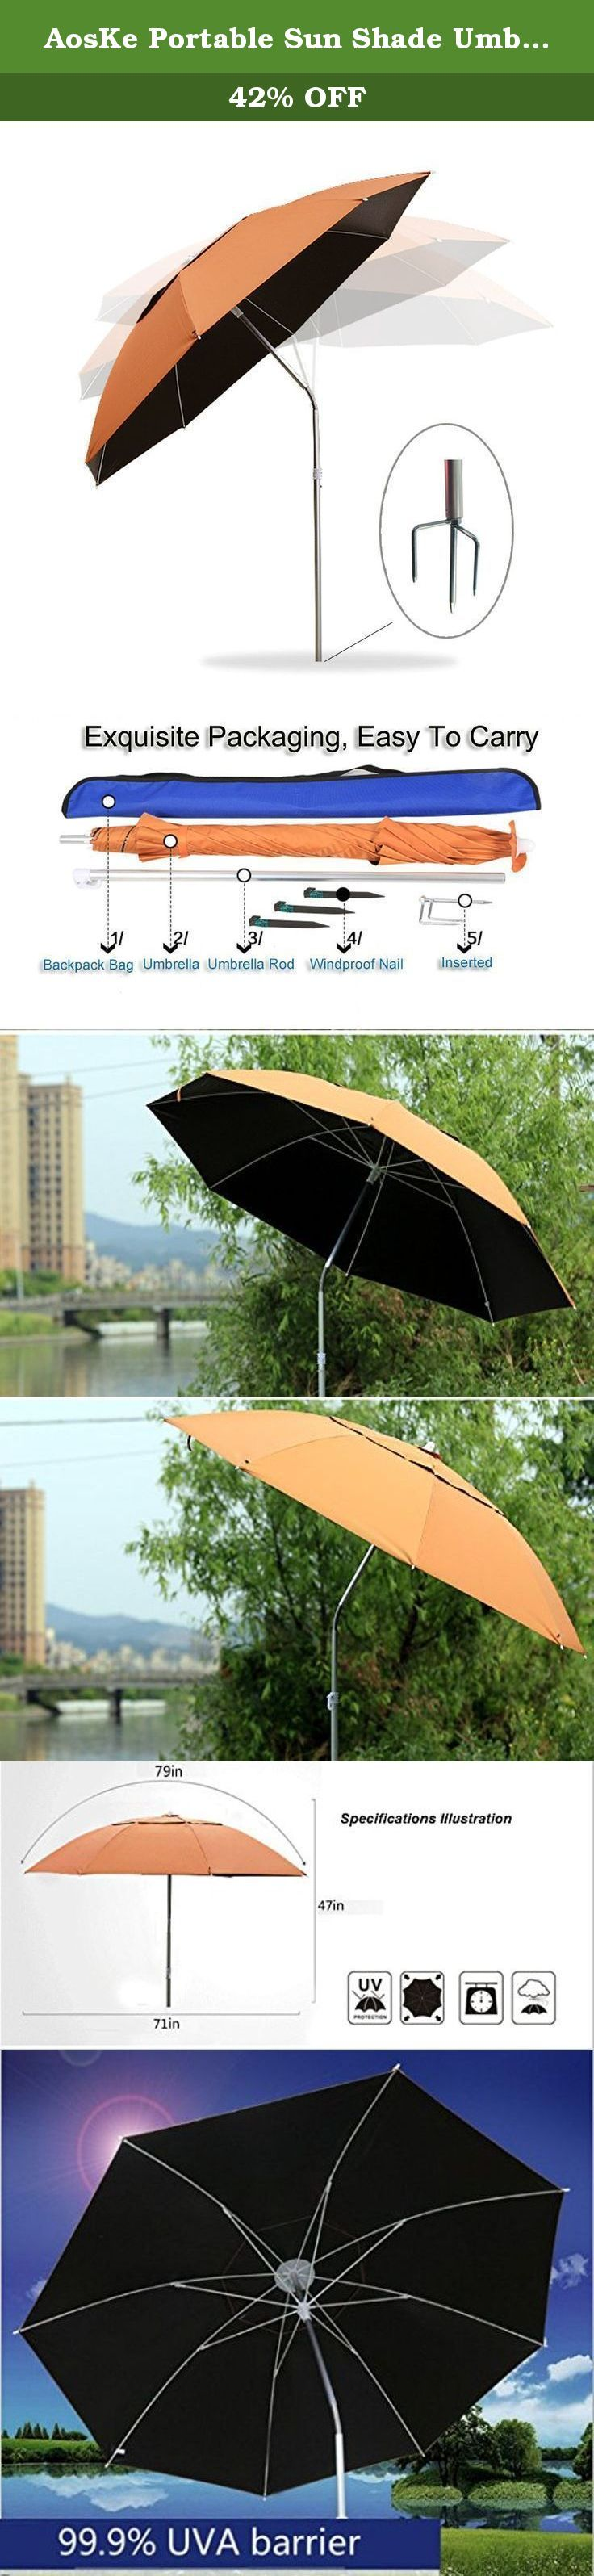 AosKe Portable Sun Shade Umbrella, Inclined, Heat Insulation, Antiultraviolet Function, Commonly Used In Garden, Beaches, Fishing Essential - Orange. Color: Orange Product Features: 1) Can block 90% of the UV, greatly reduce the damage to the human body by UV. 2) You can bend, Easy to block ultraviolet rays from multiple directions to your injury. 3) Easy installation, easy disassembly, light weight, small size and easy to carryIt, greatly saves you time to enjoy the outdoor life. Package...